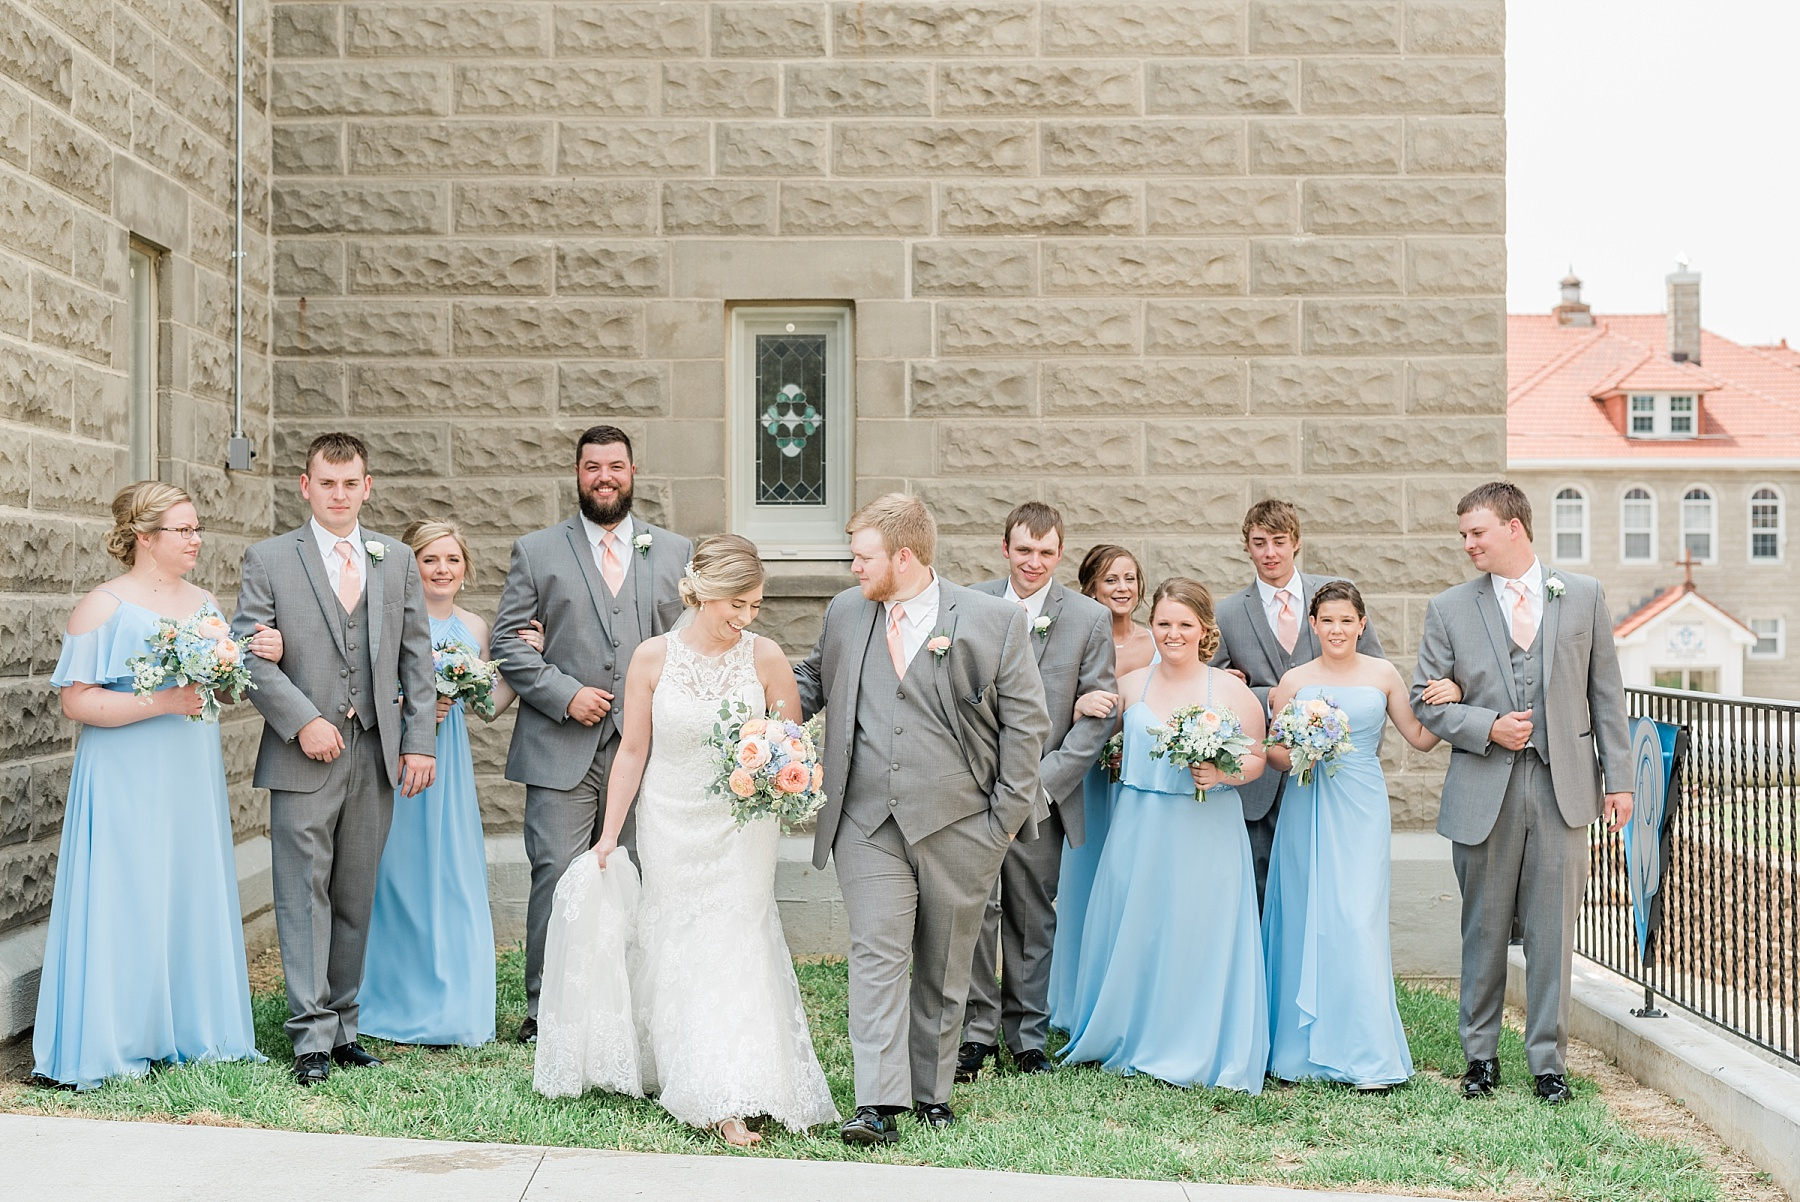 Peach and Dusty Blue Spring Wedding in Rolling Hills of Mid Missouri by Kelsi Kliethermes Photography Best Missouri and Maui Wedding Photographer_0006.jpg